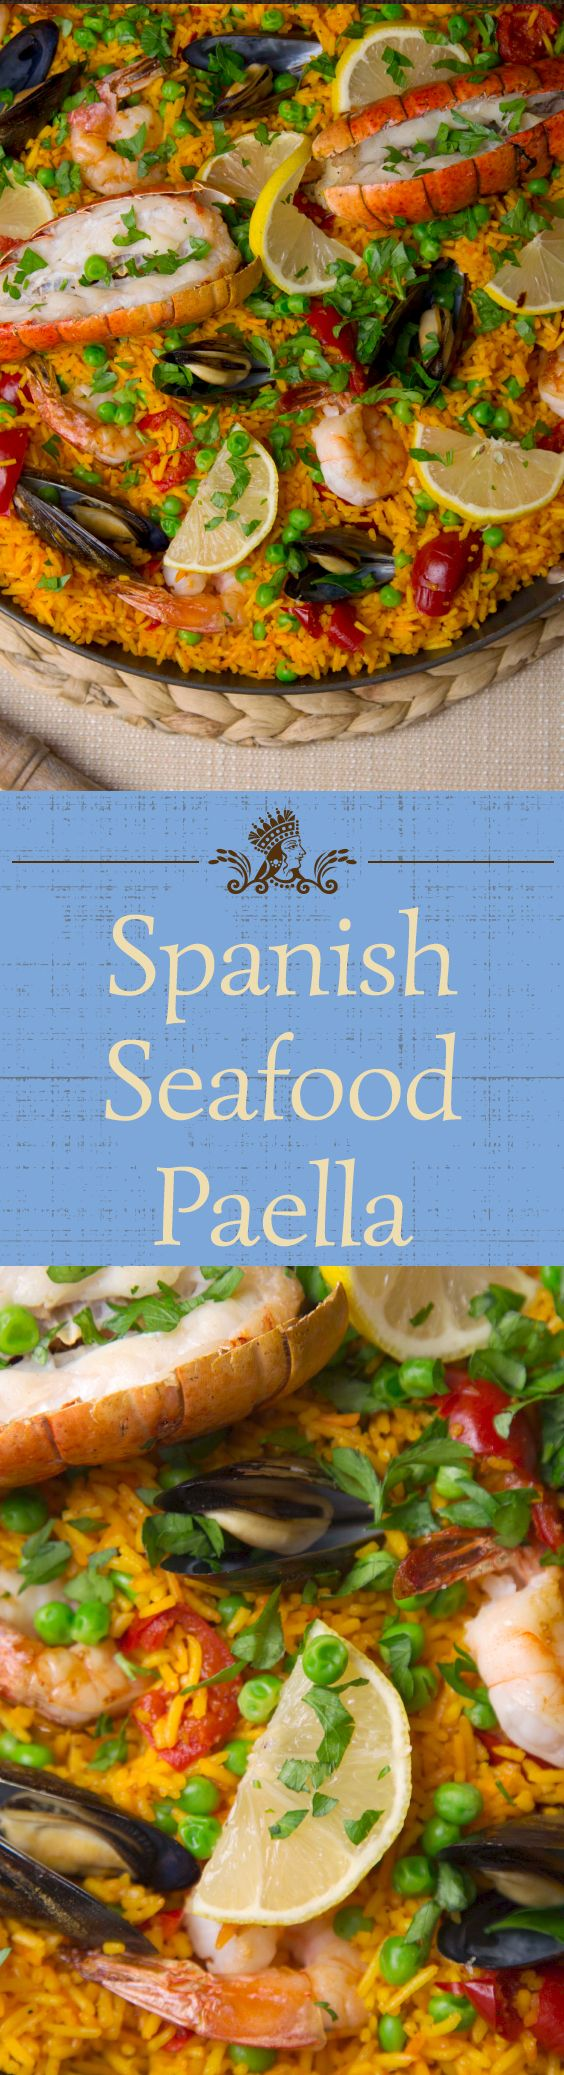 Seafood paella is a show-stopping rice dish from Spain. Impress your guests with an epic Royal Basmati Rice paella they will never forget!